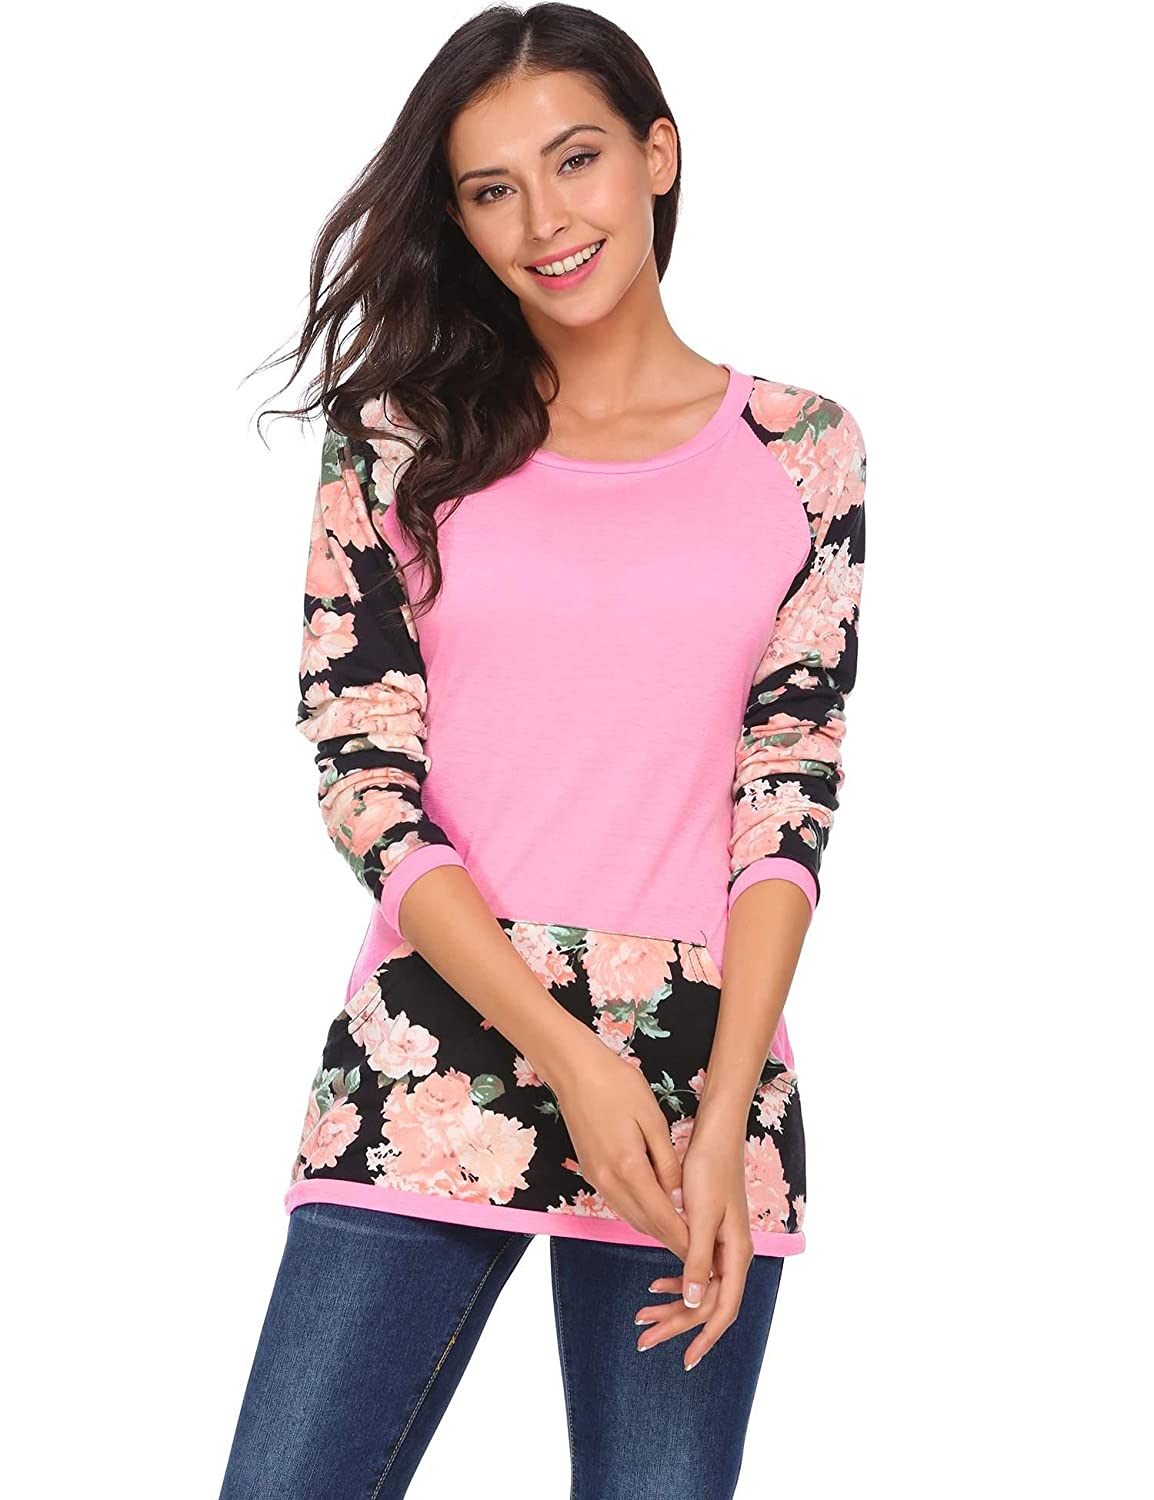 Meaneor Women's Floral Printed Splicing Pattern Crewneck Front Pocket Long Sleeve Top